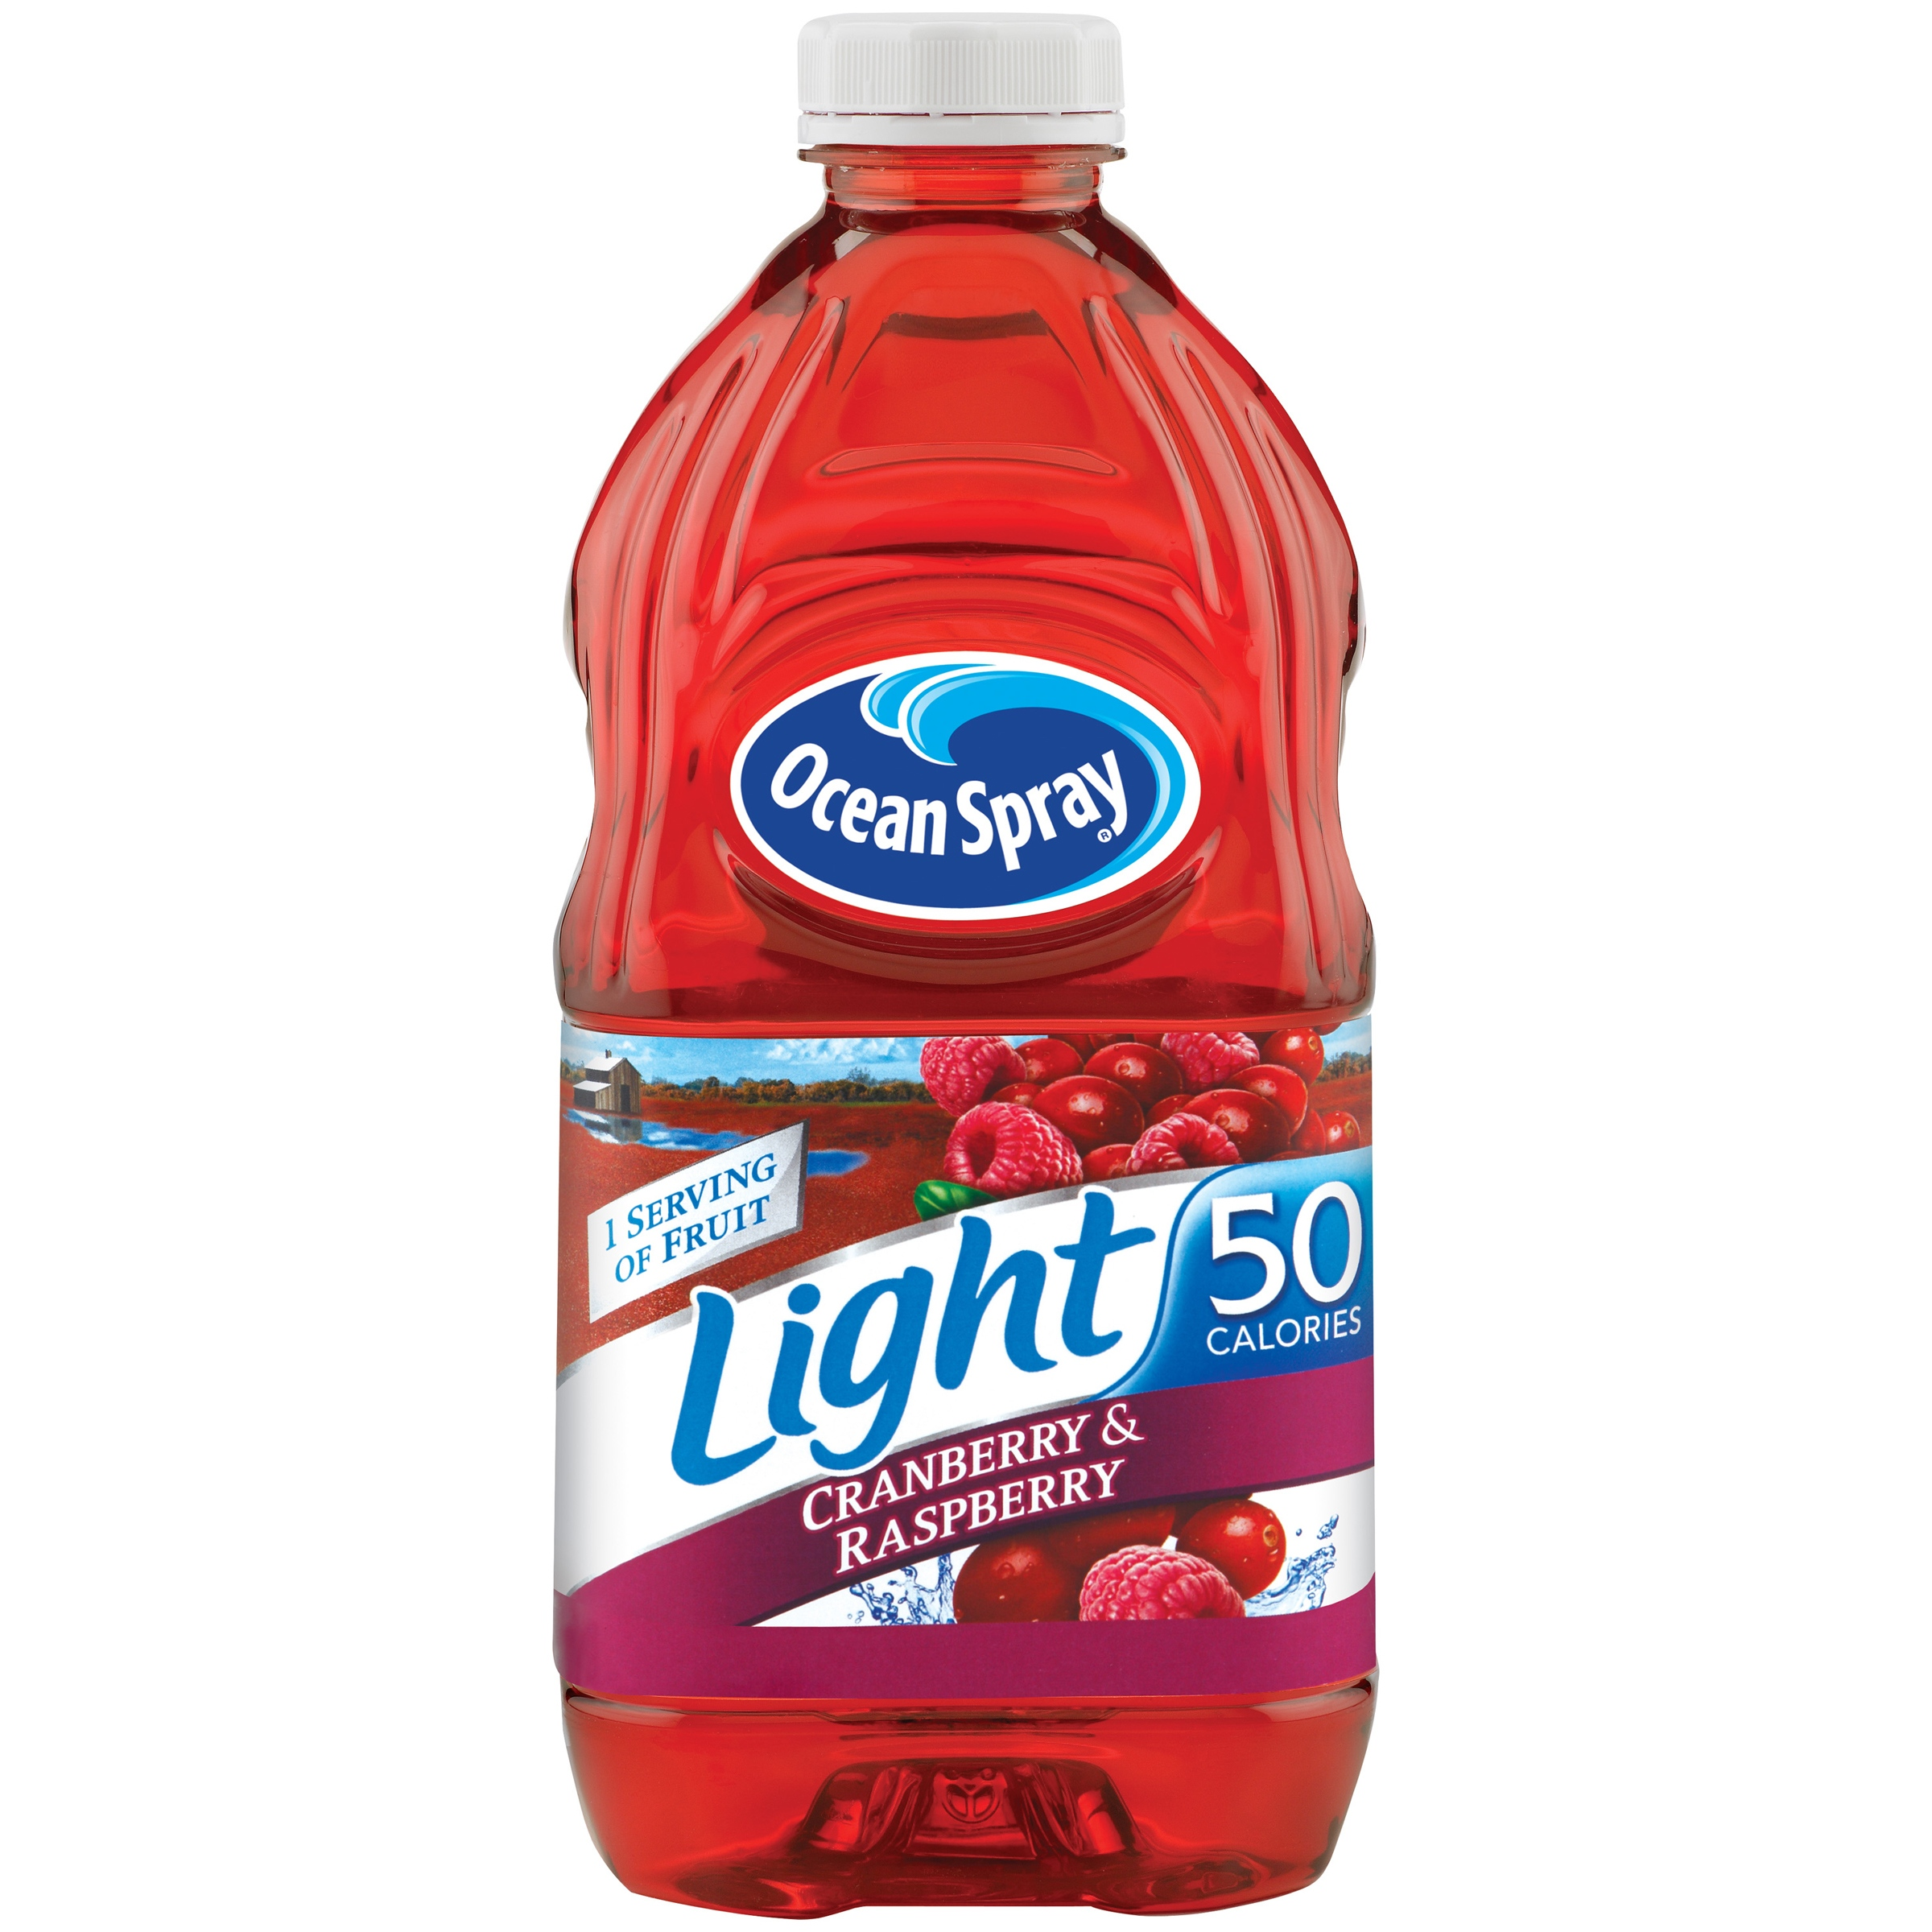 Ocean Spray Light Cranberry and Raspberry Juice Drink, 64 Oz. Bottle